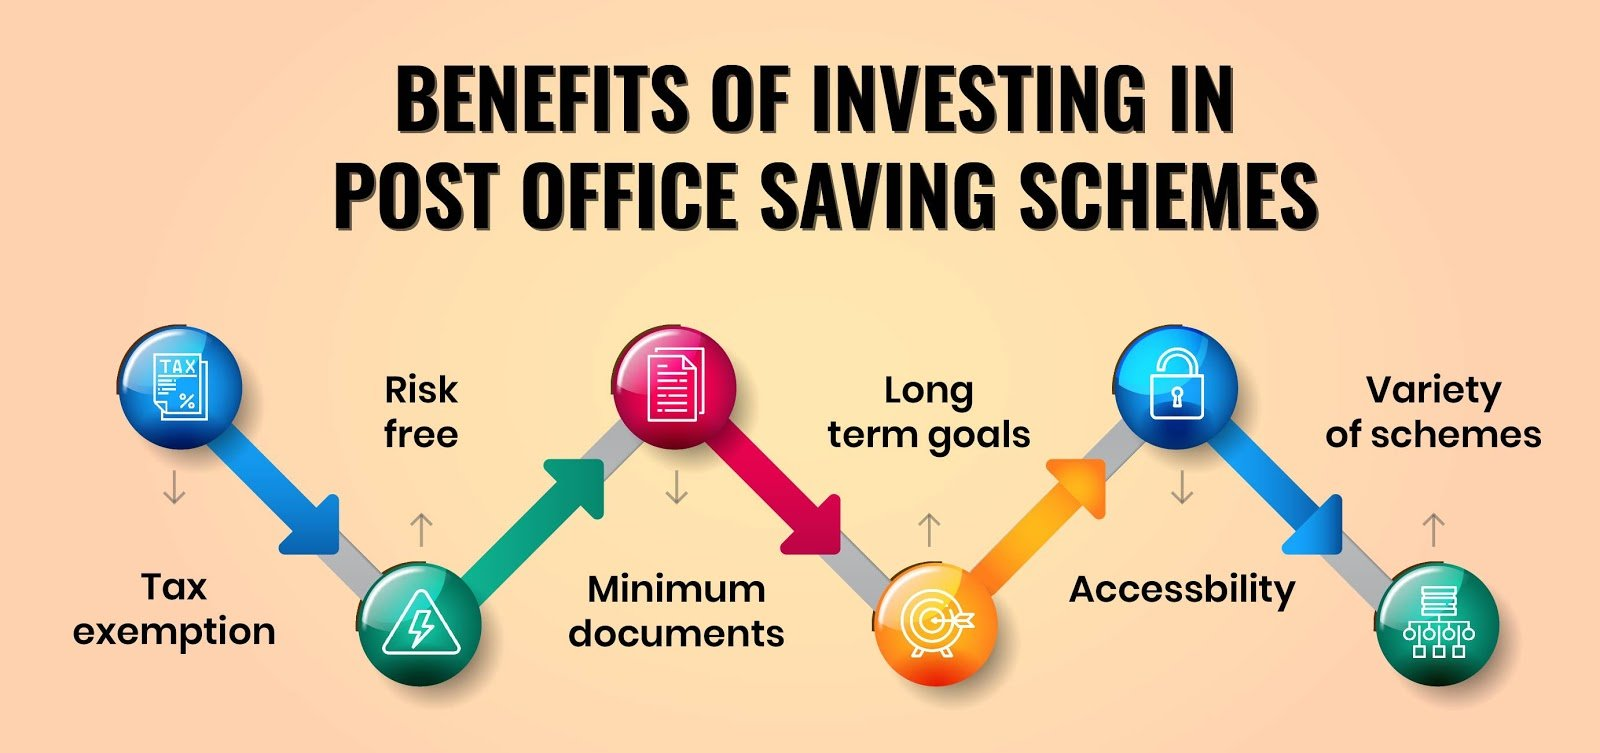 Advantages of Post Office Savings Schemes